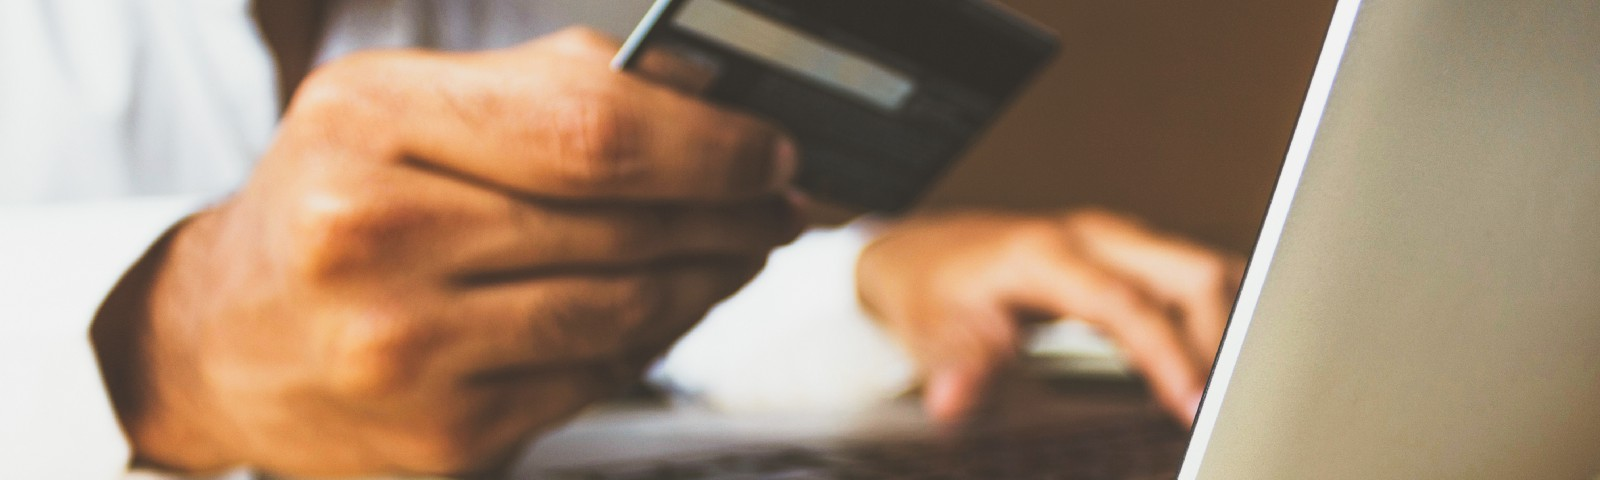 man making purchase on laptop with credit card